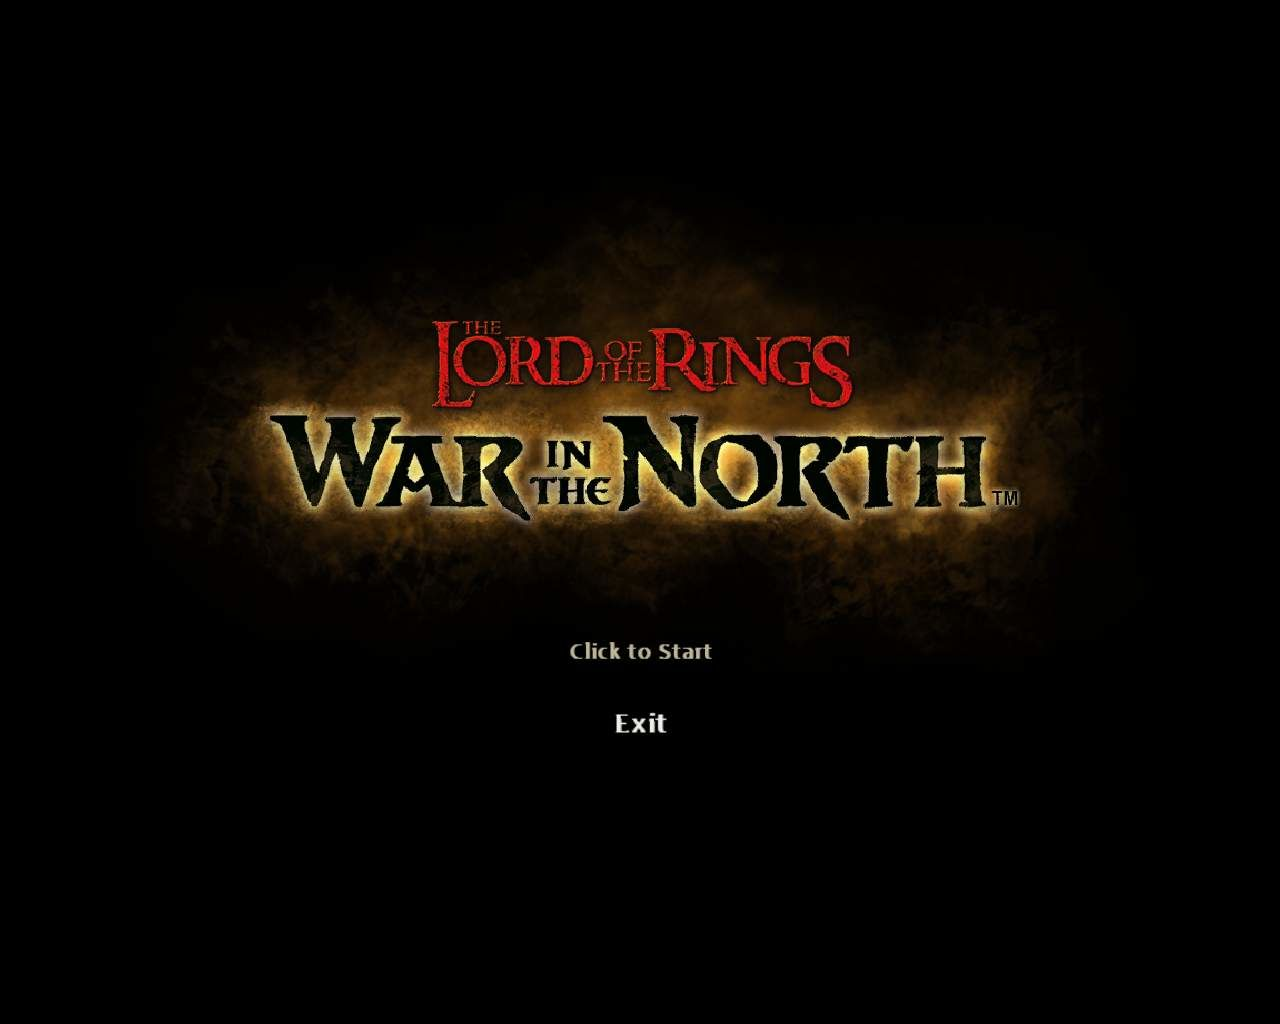 The Lord of the Rings: War in the North Windows Title screen